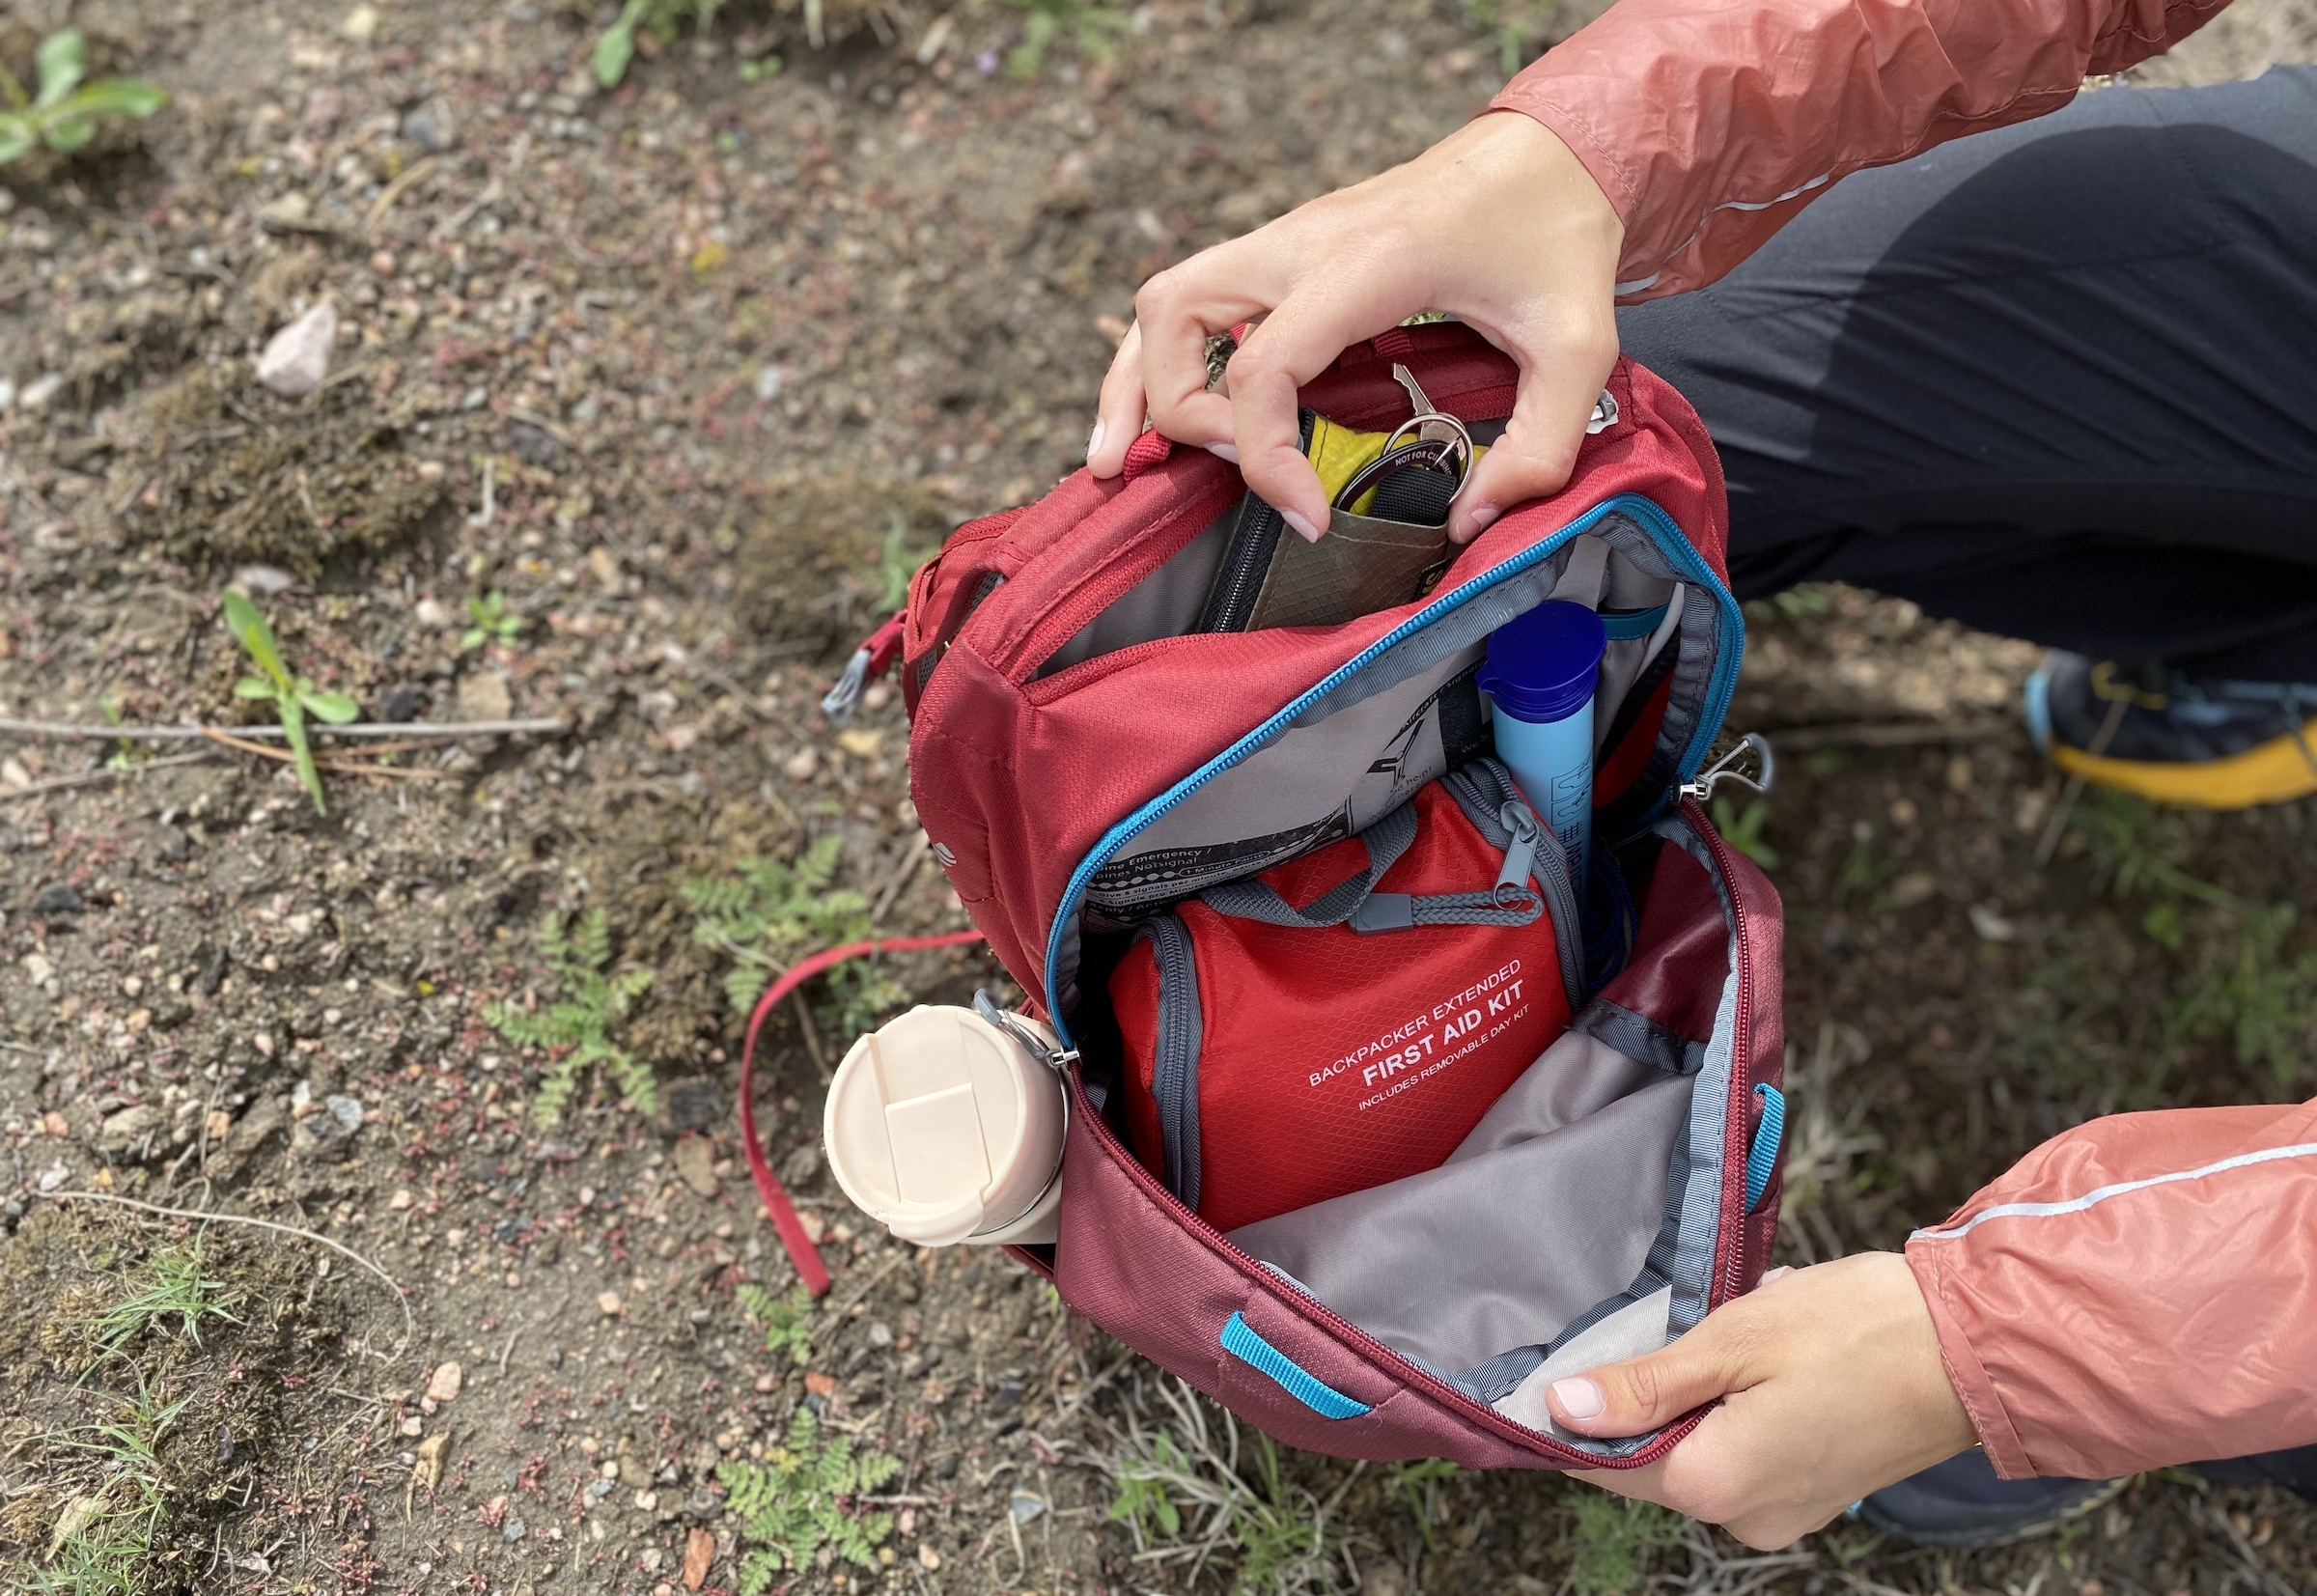 a red daypack with a first aid kit, layer, water bottle, and wallet visible